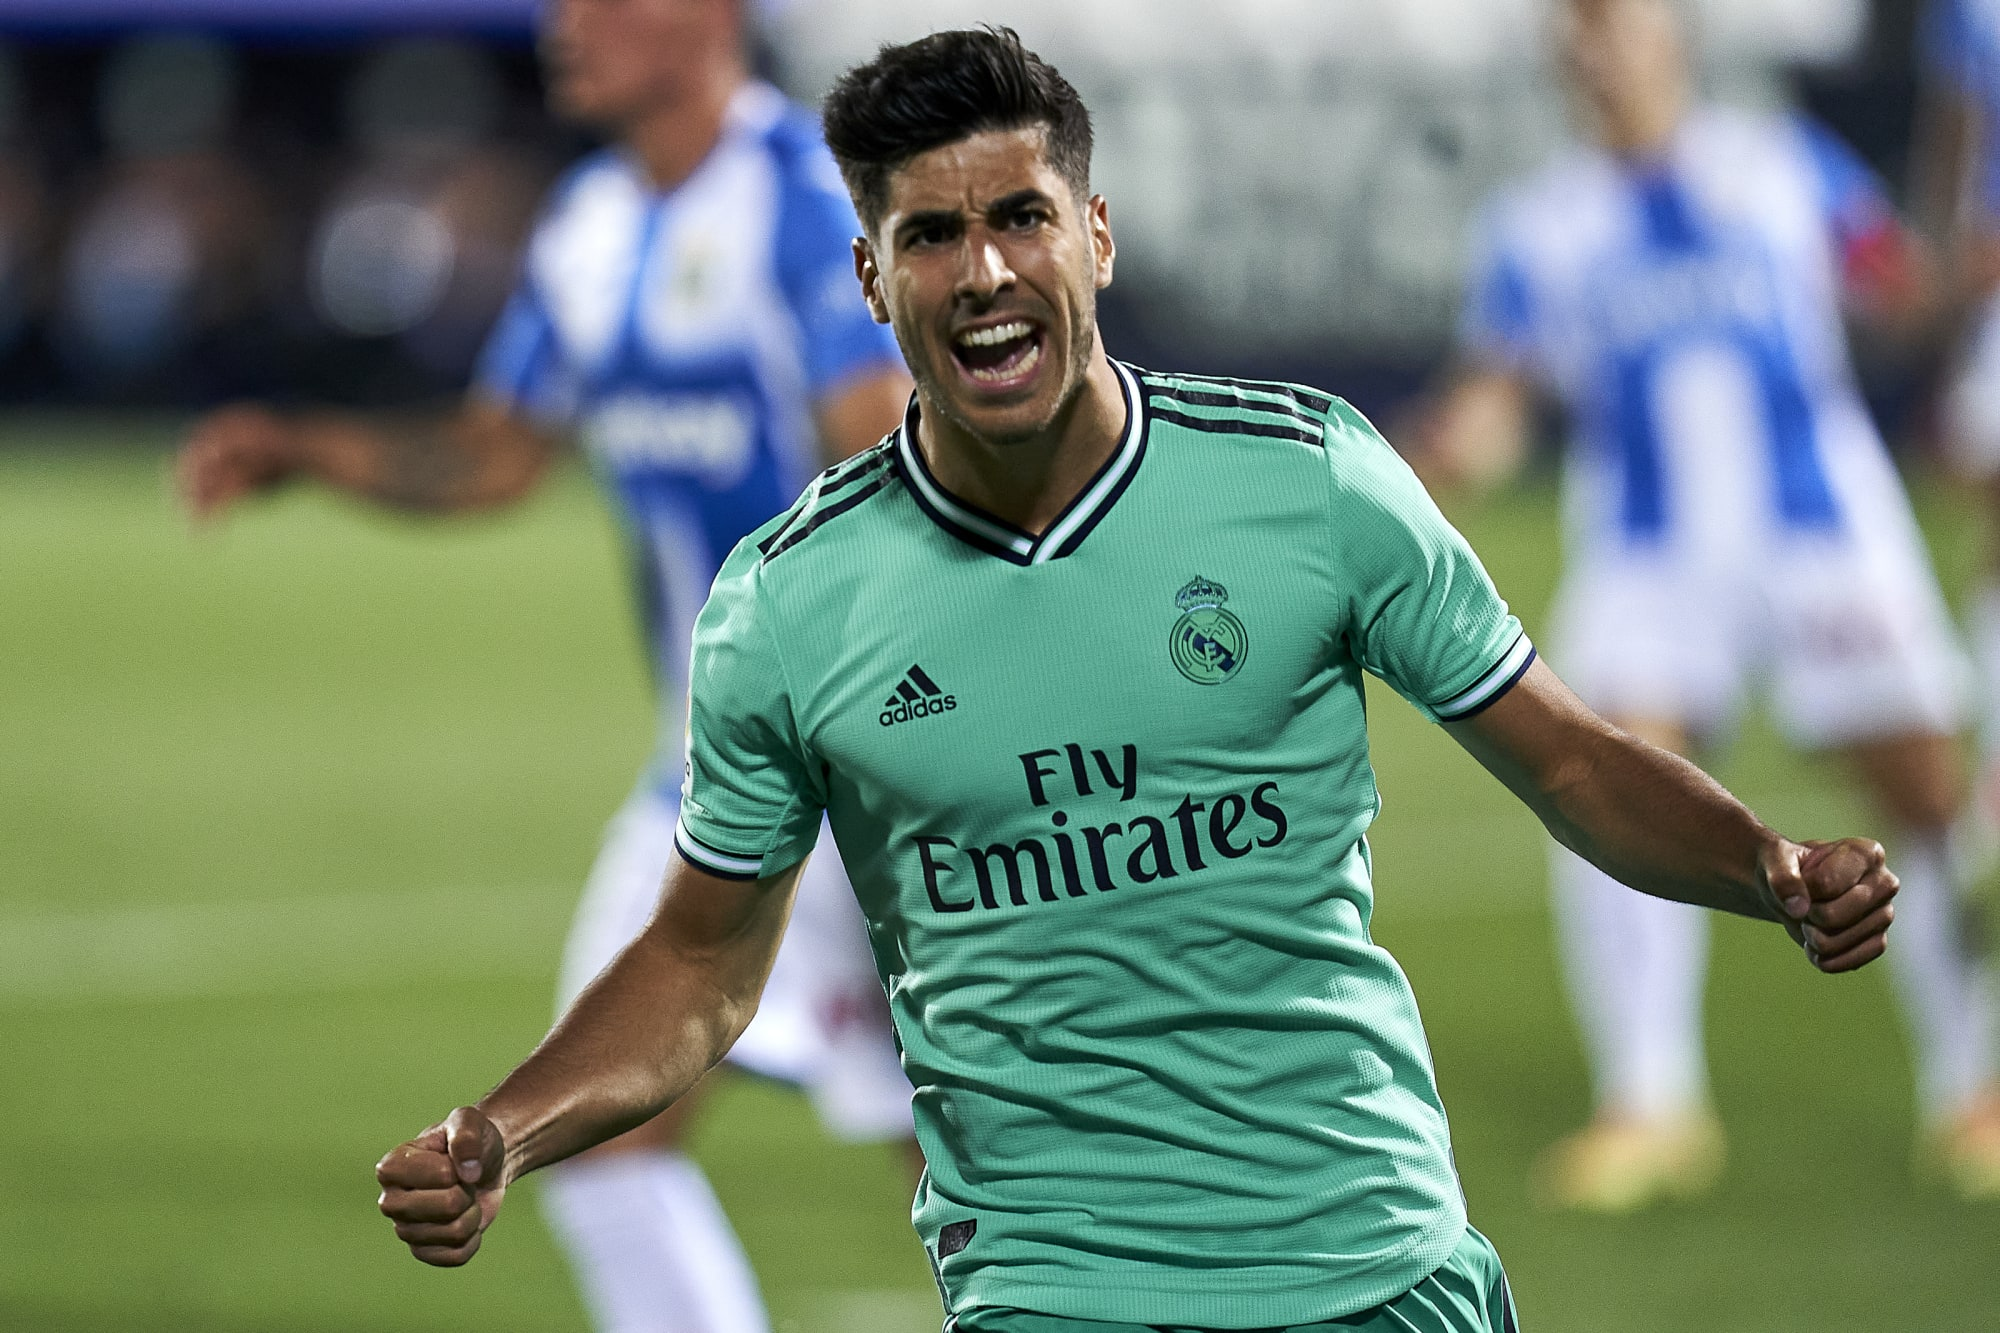 Real Madrid: Four players who need a headstart this season